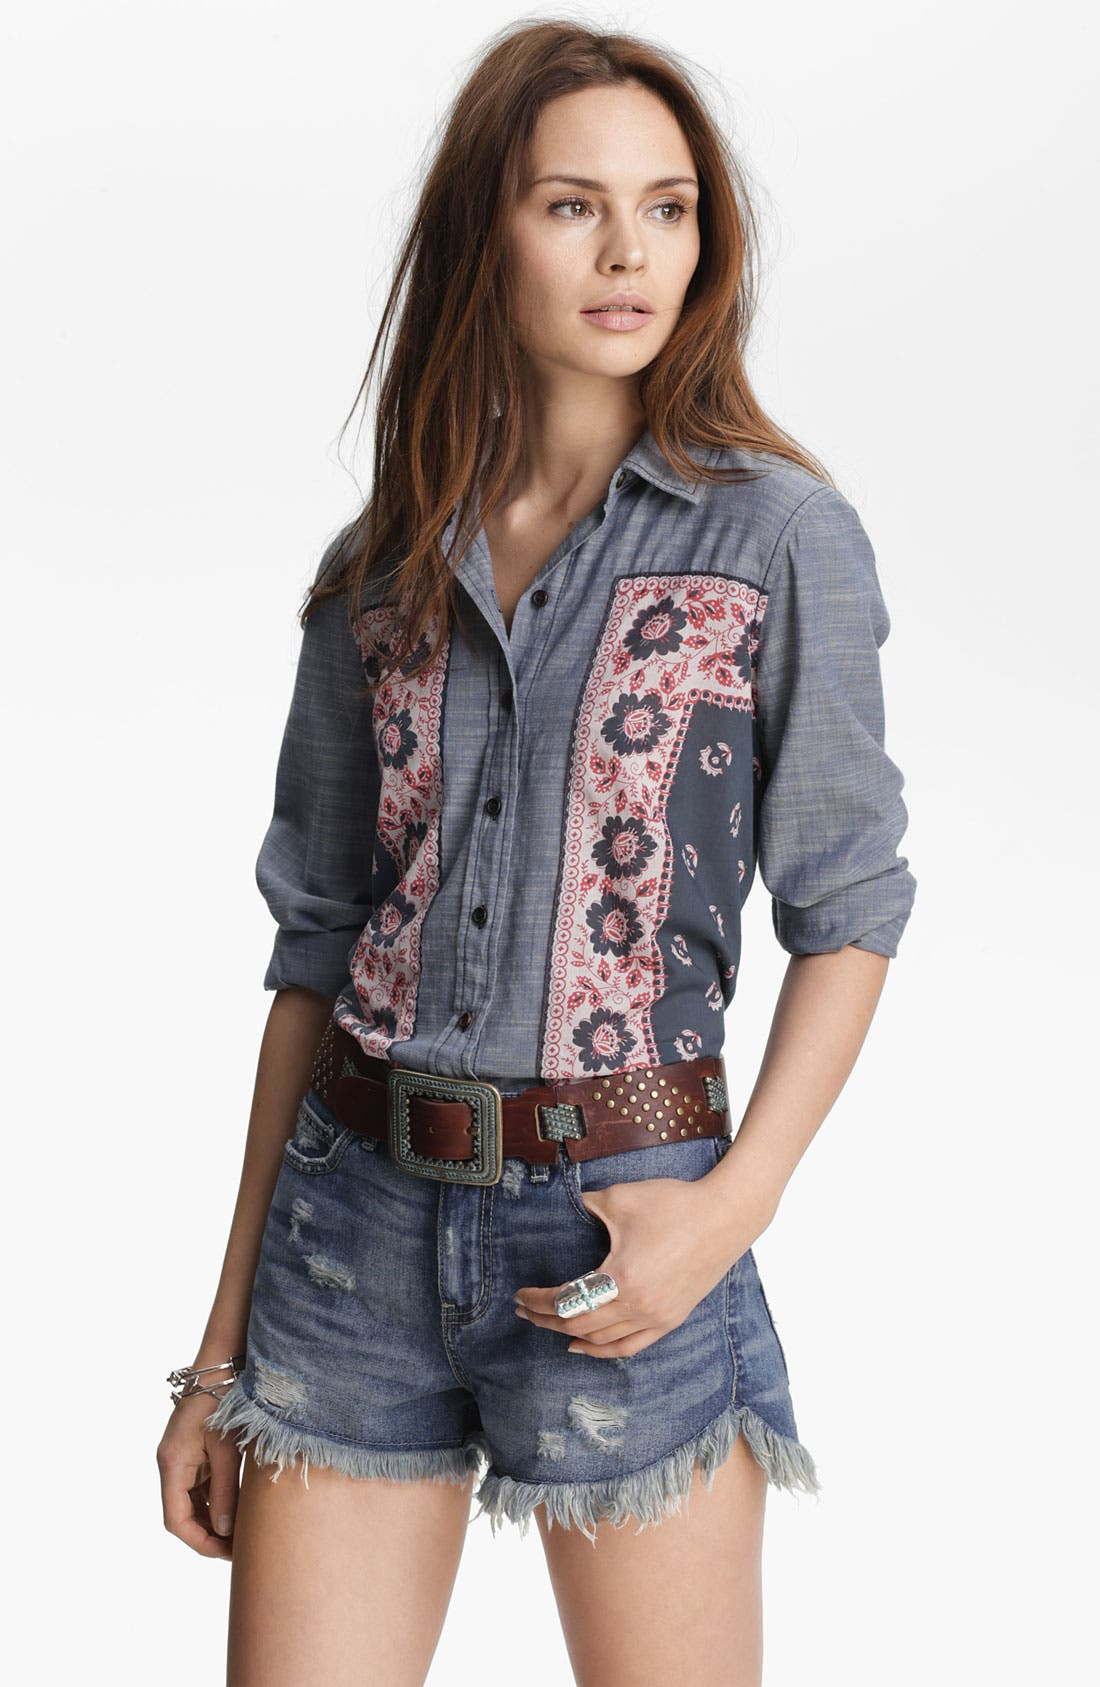 Alternate Image 1 Selected - Free People 'Born Free' Floral Panel Shirt